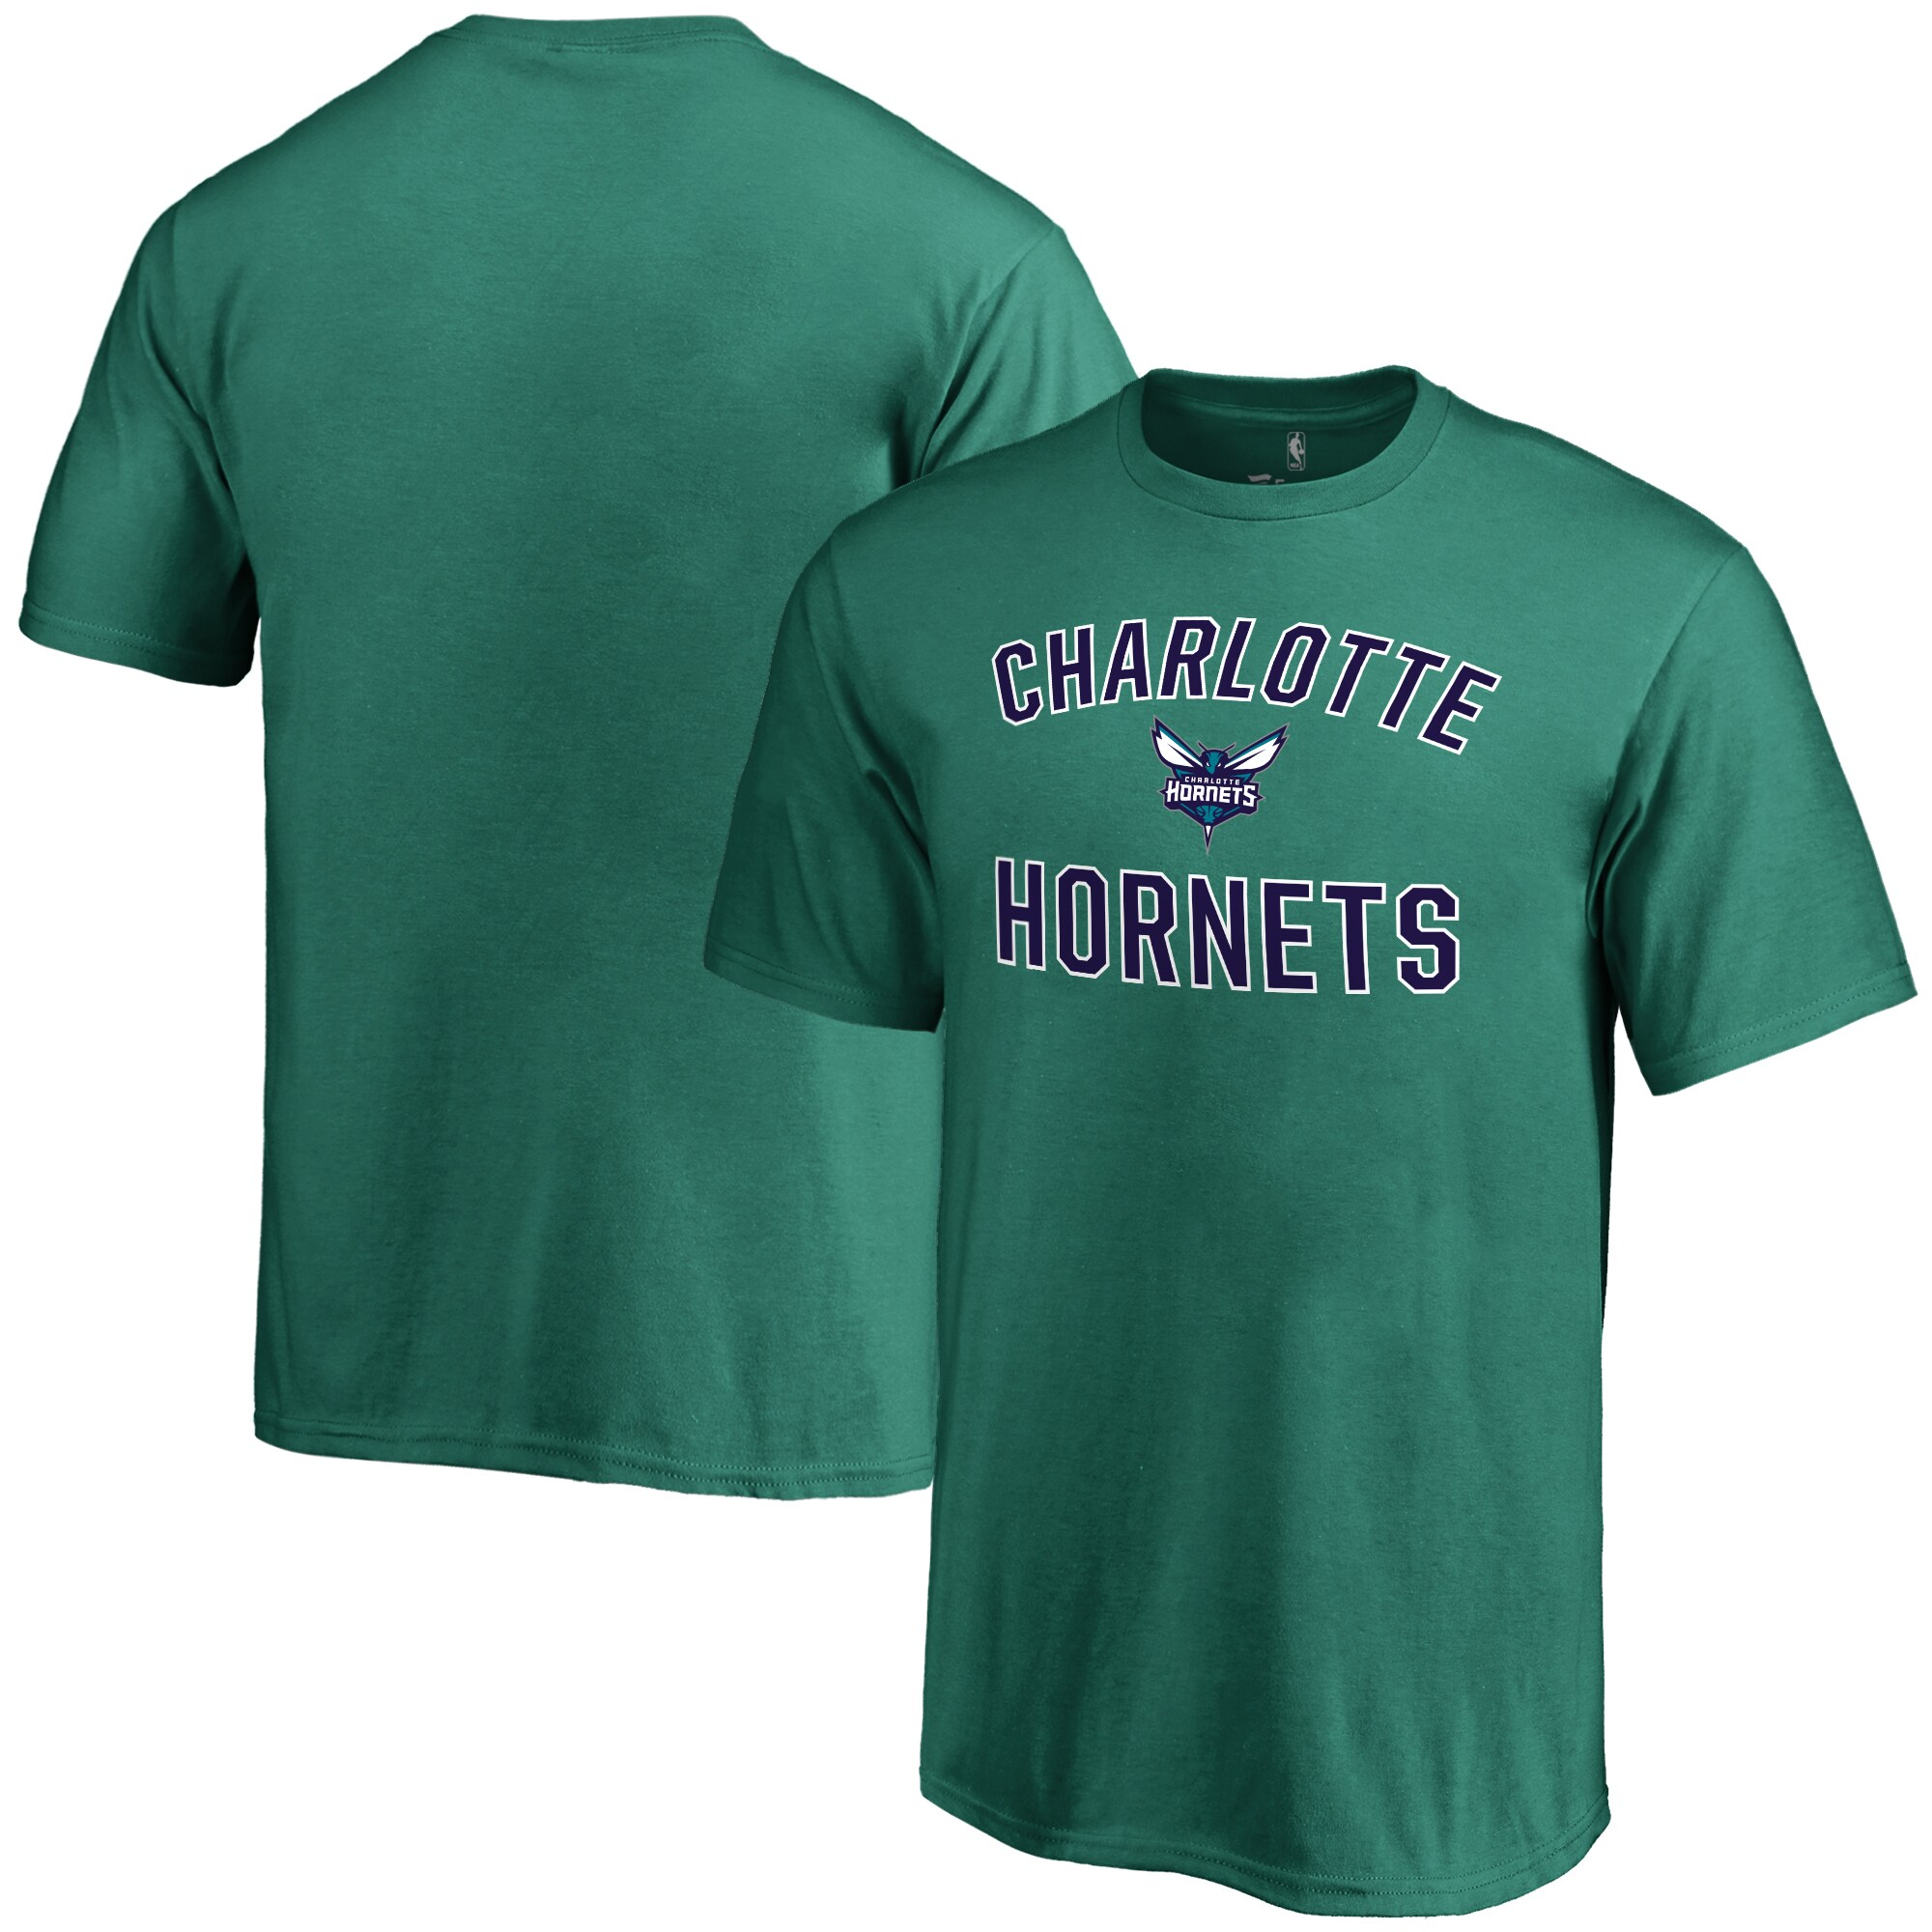 Charlotte Hornets Youth Victory Arch T-Shirt - Teal